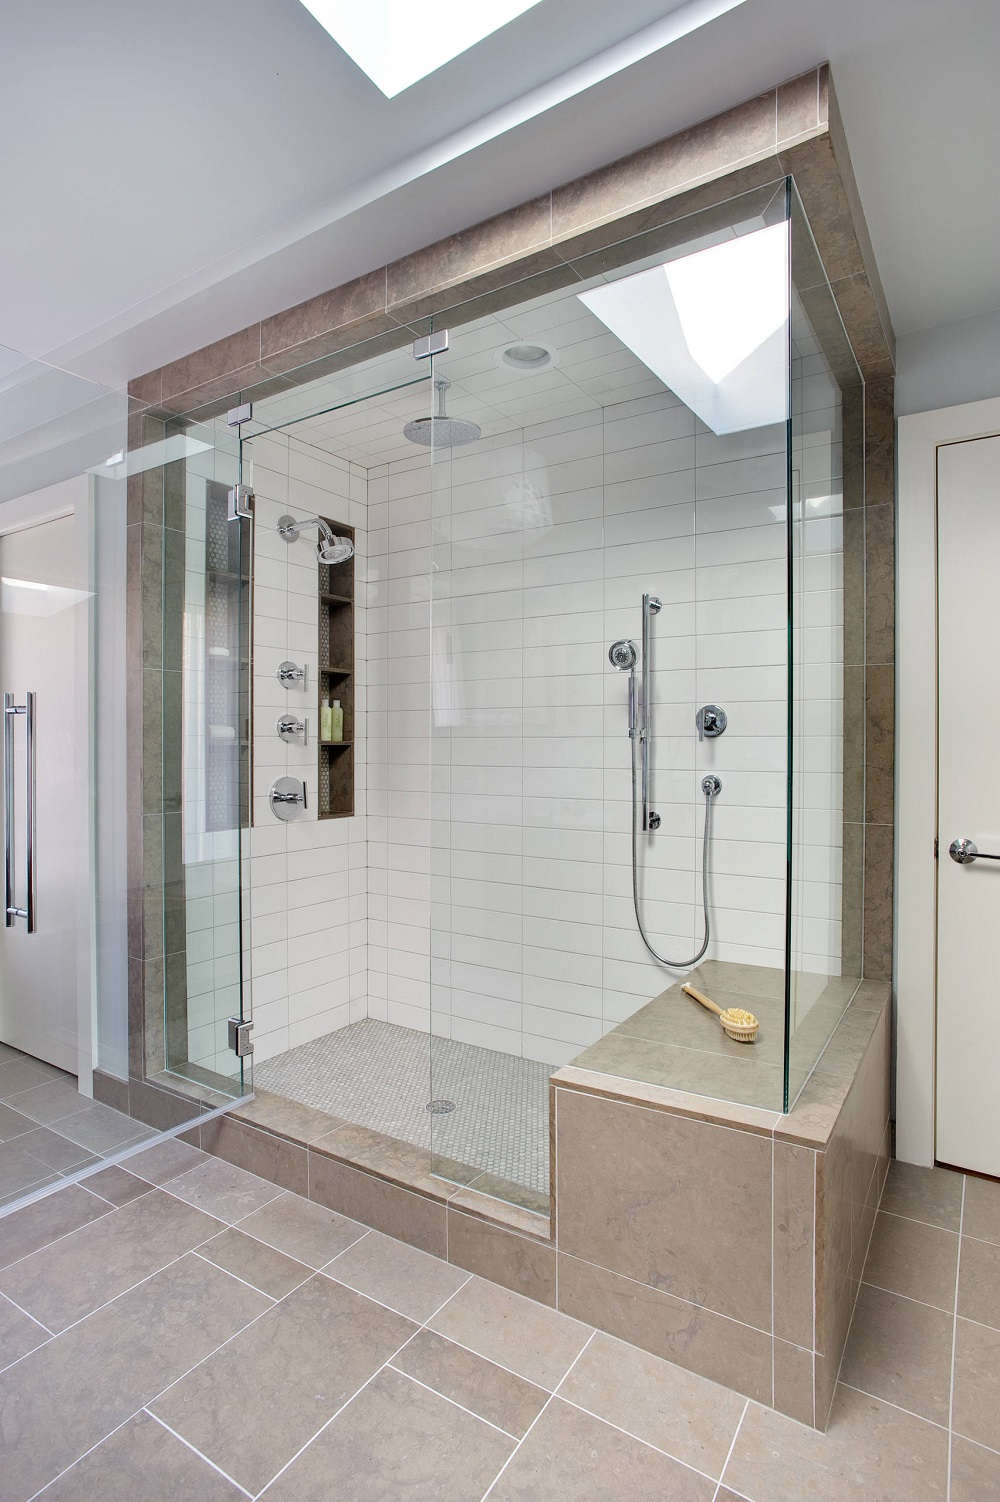 wb22 Fantastic looking ideas and designs for shower tiles to check out